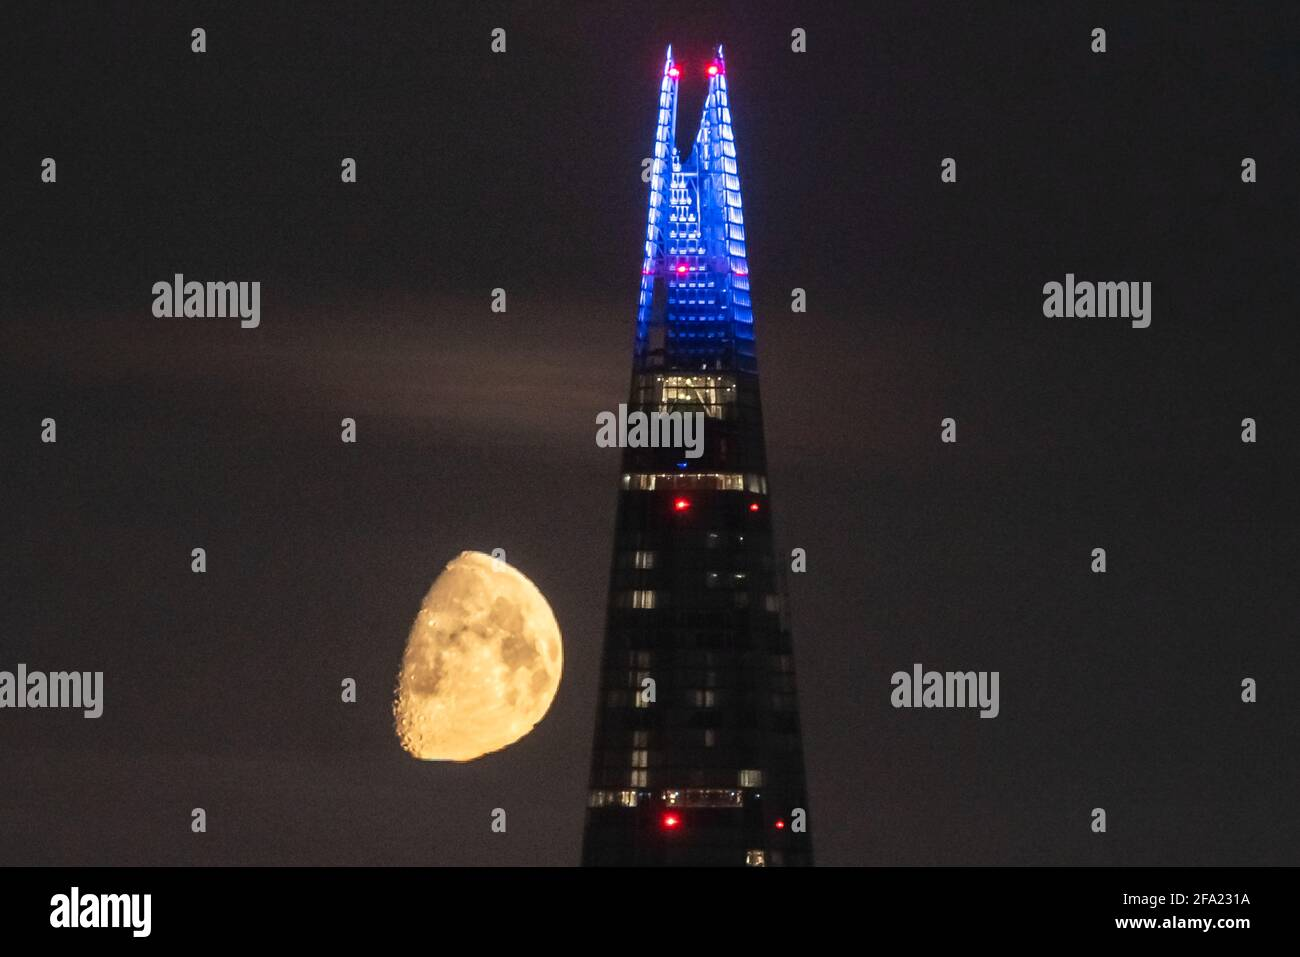 London, UK. 22nd April, 2021. UK Weather: A 75% Waxing Gibbous moon continues to set in the early hours of Thursday moving behind The Shard skyscraper building following a westerly north direction. Credit: Guy Corbishley/Alamy Live News Stock Photo